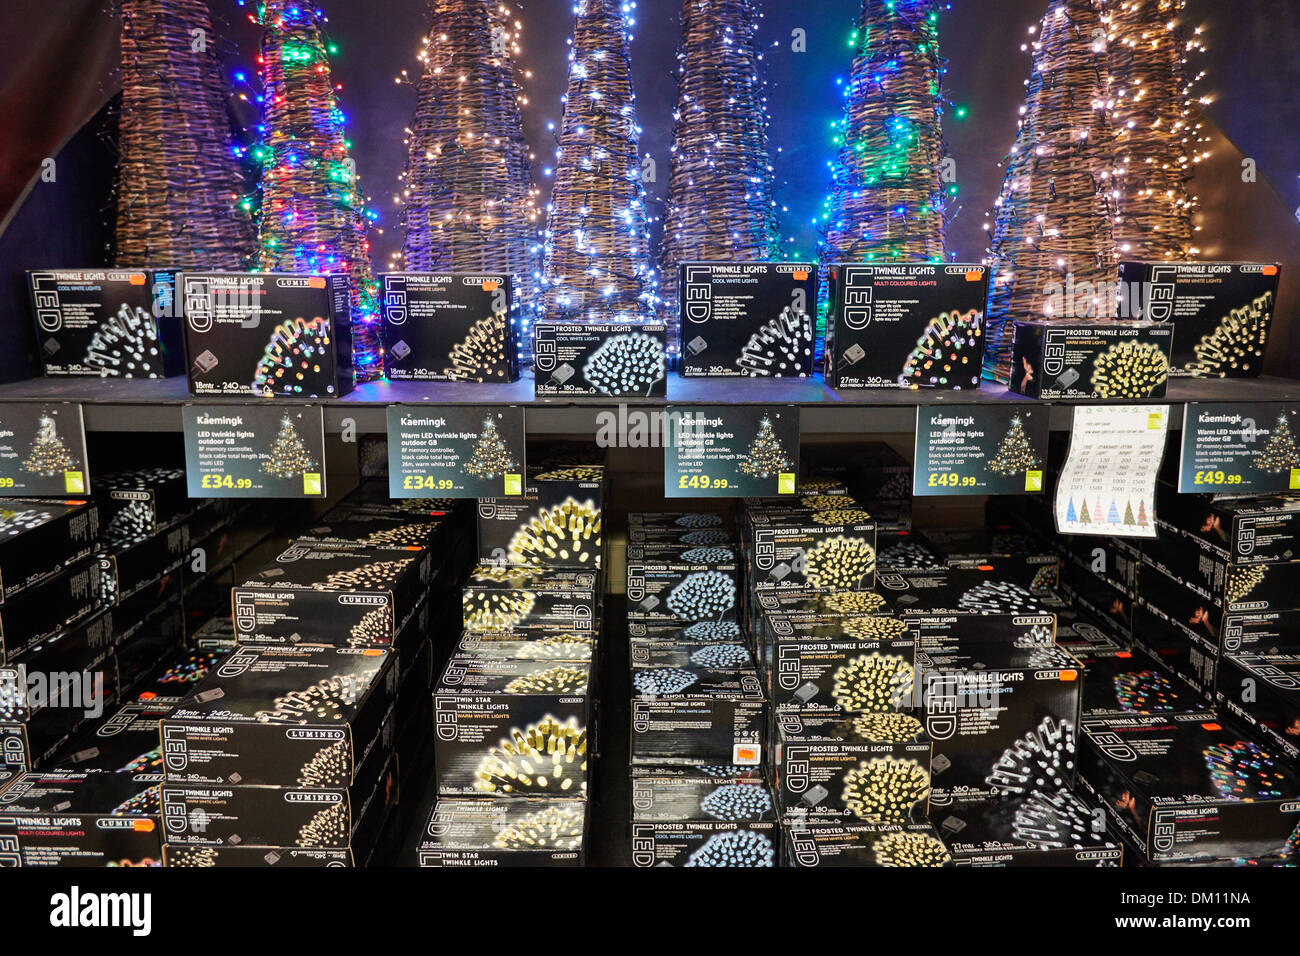 christmas led lights for sale at a garden centre stock image